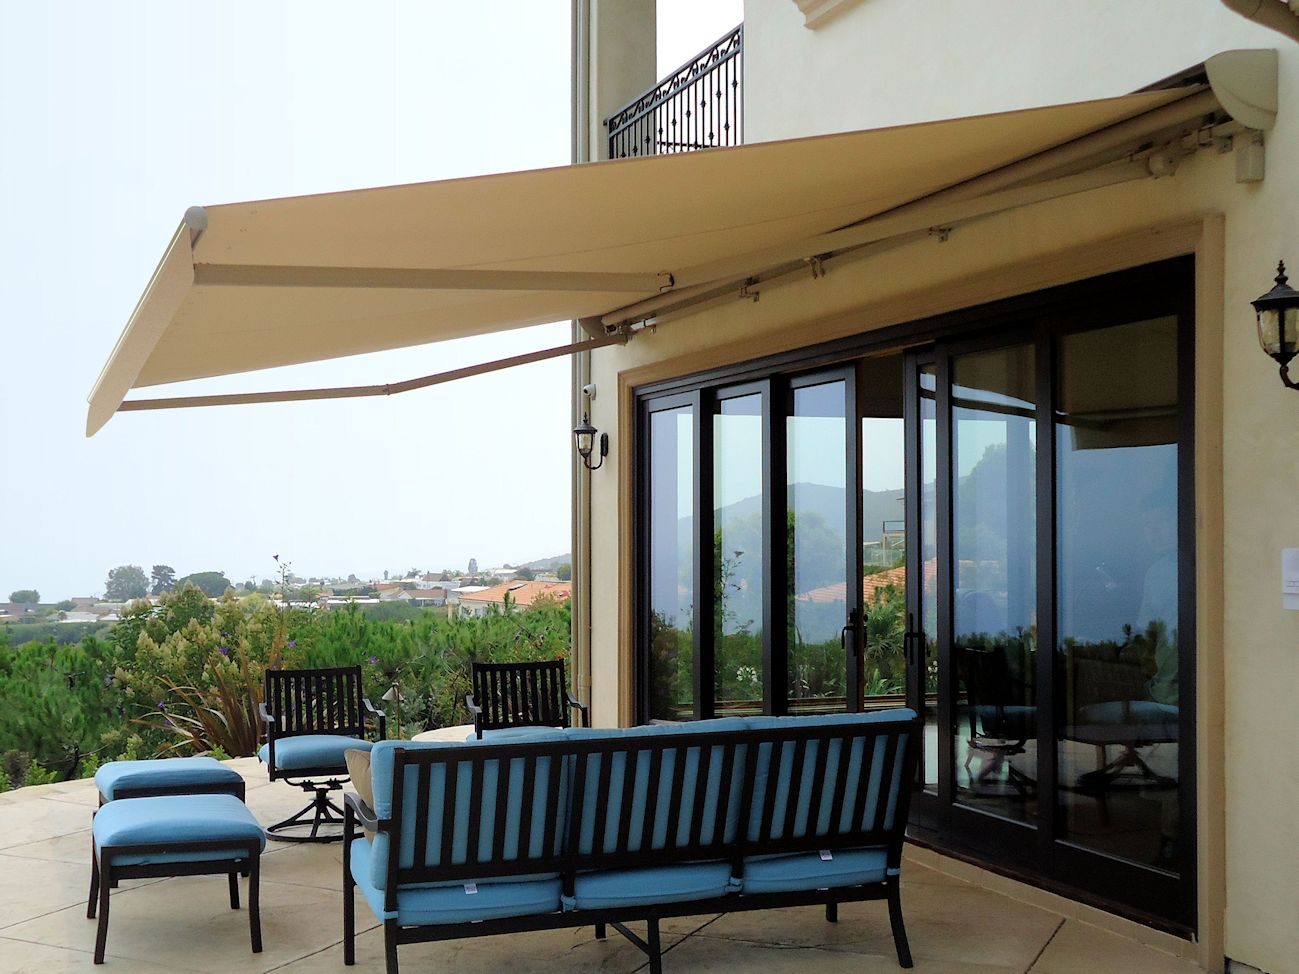 Sunbrella Retractable Awning